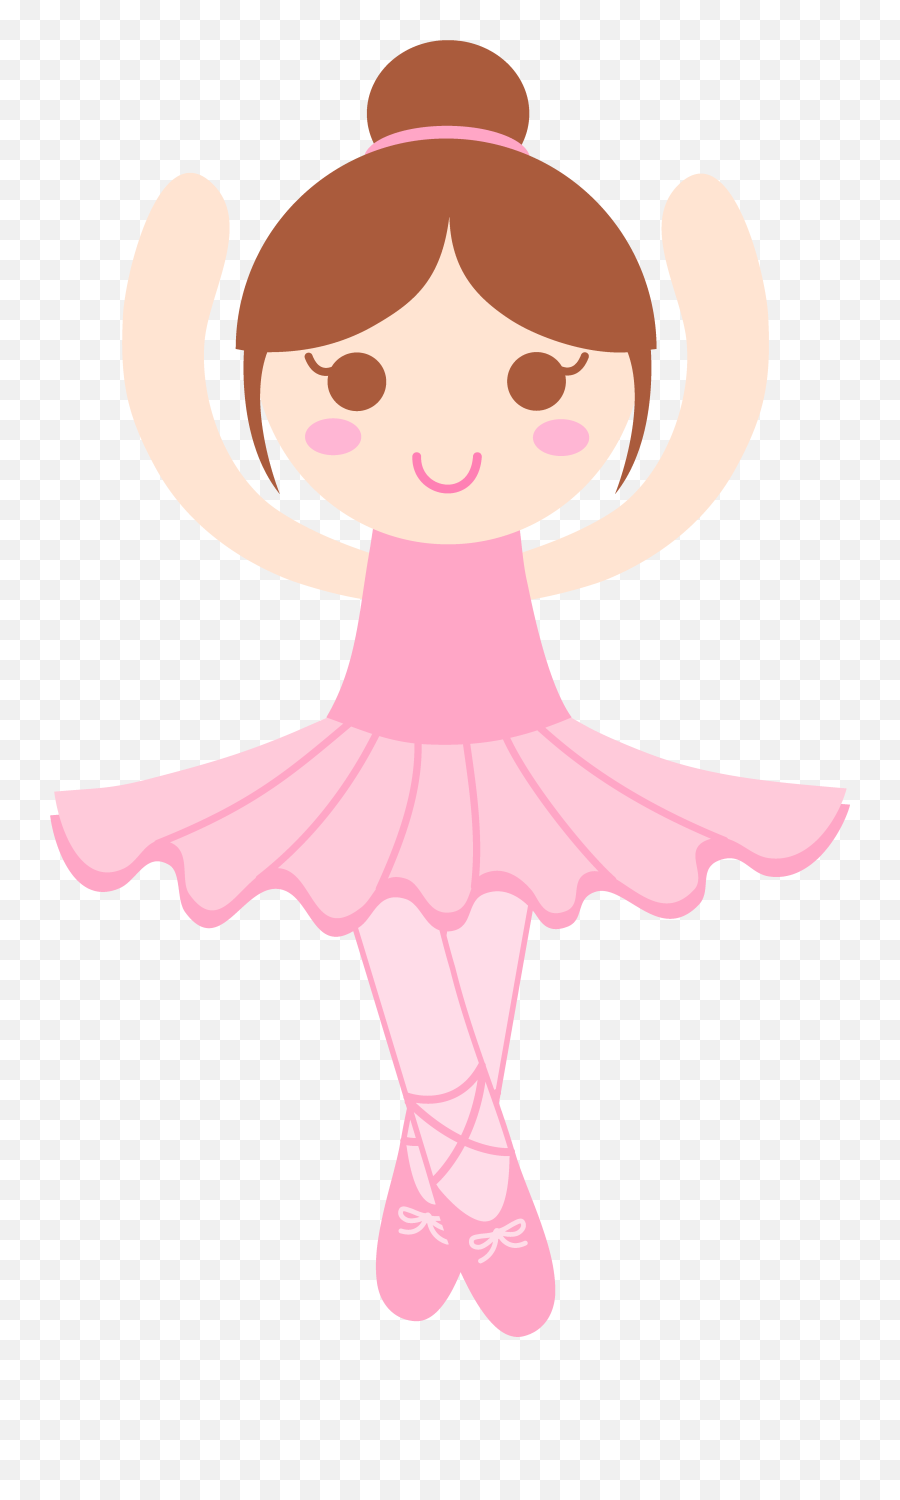 Free Dancing Girl Png Download Free Clip Art Free Clip Art Easy